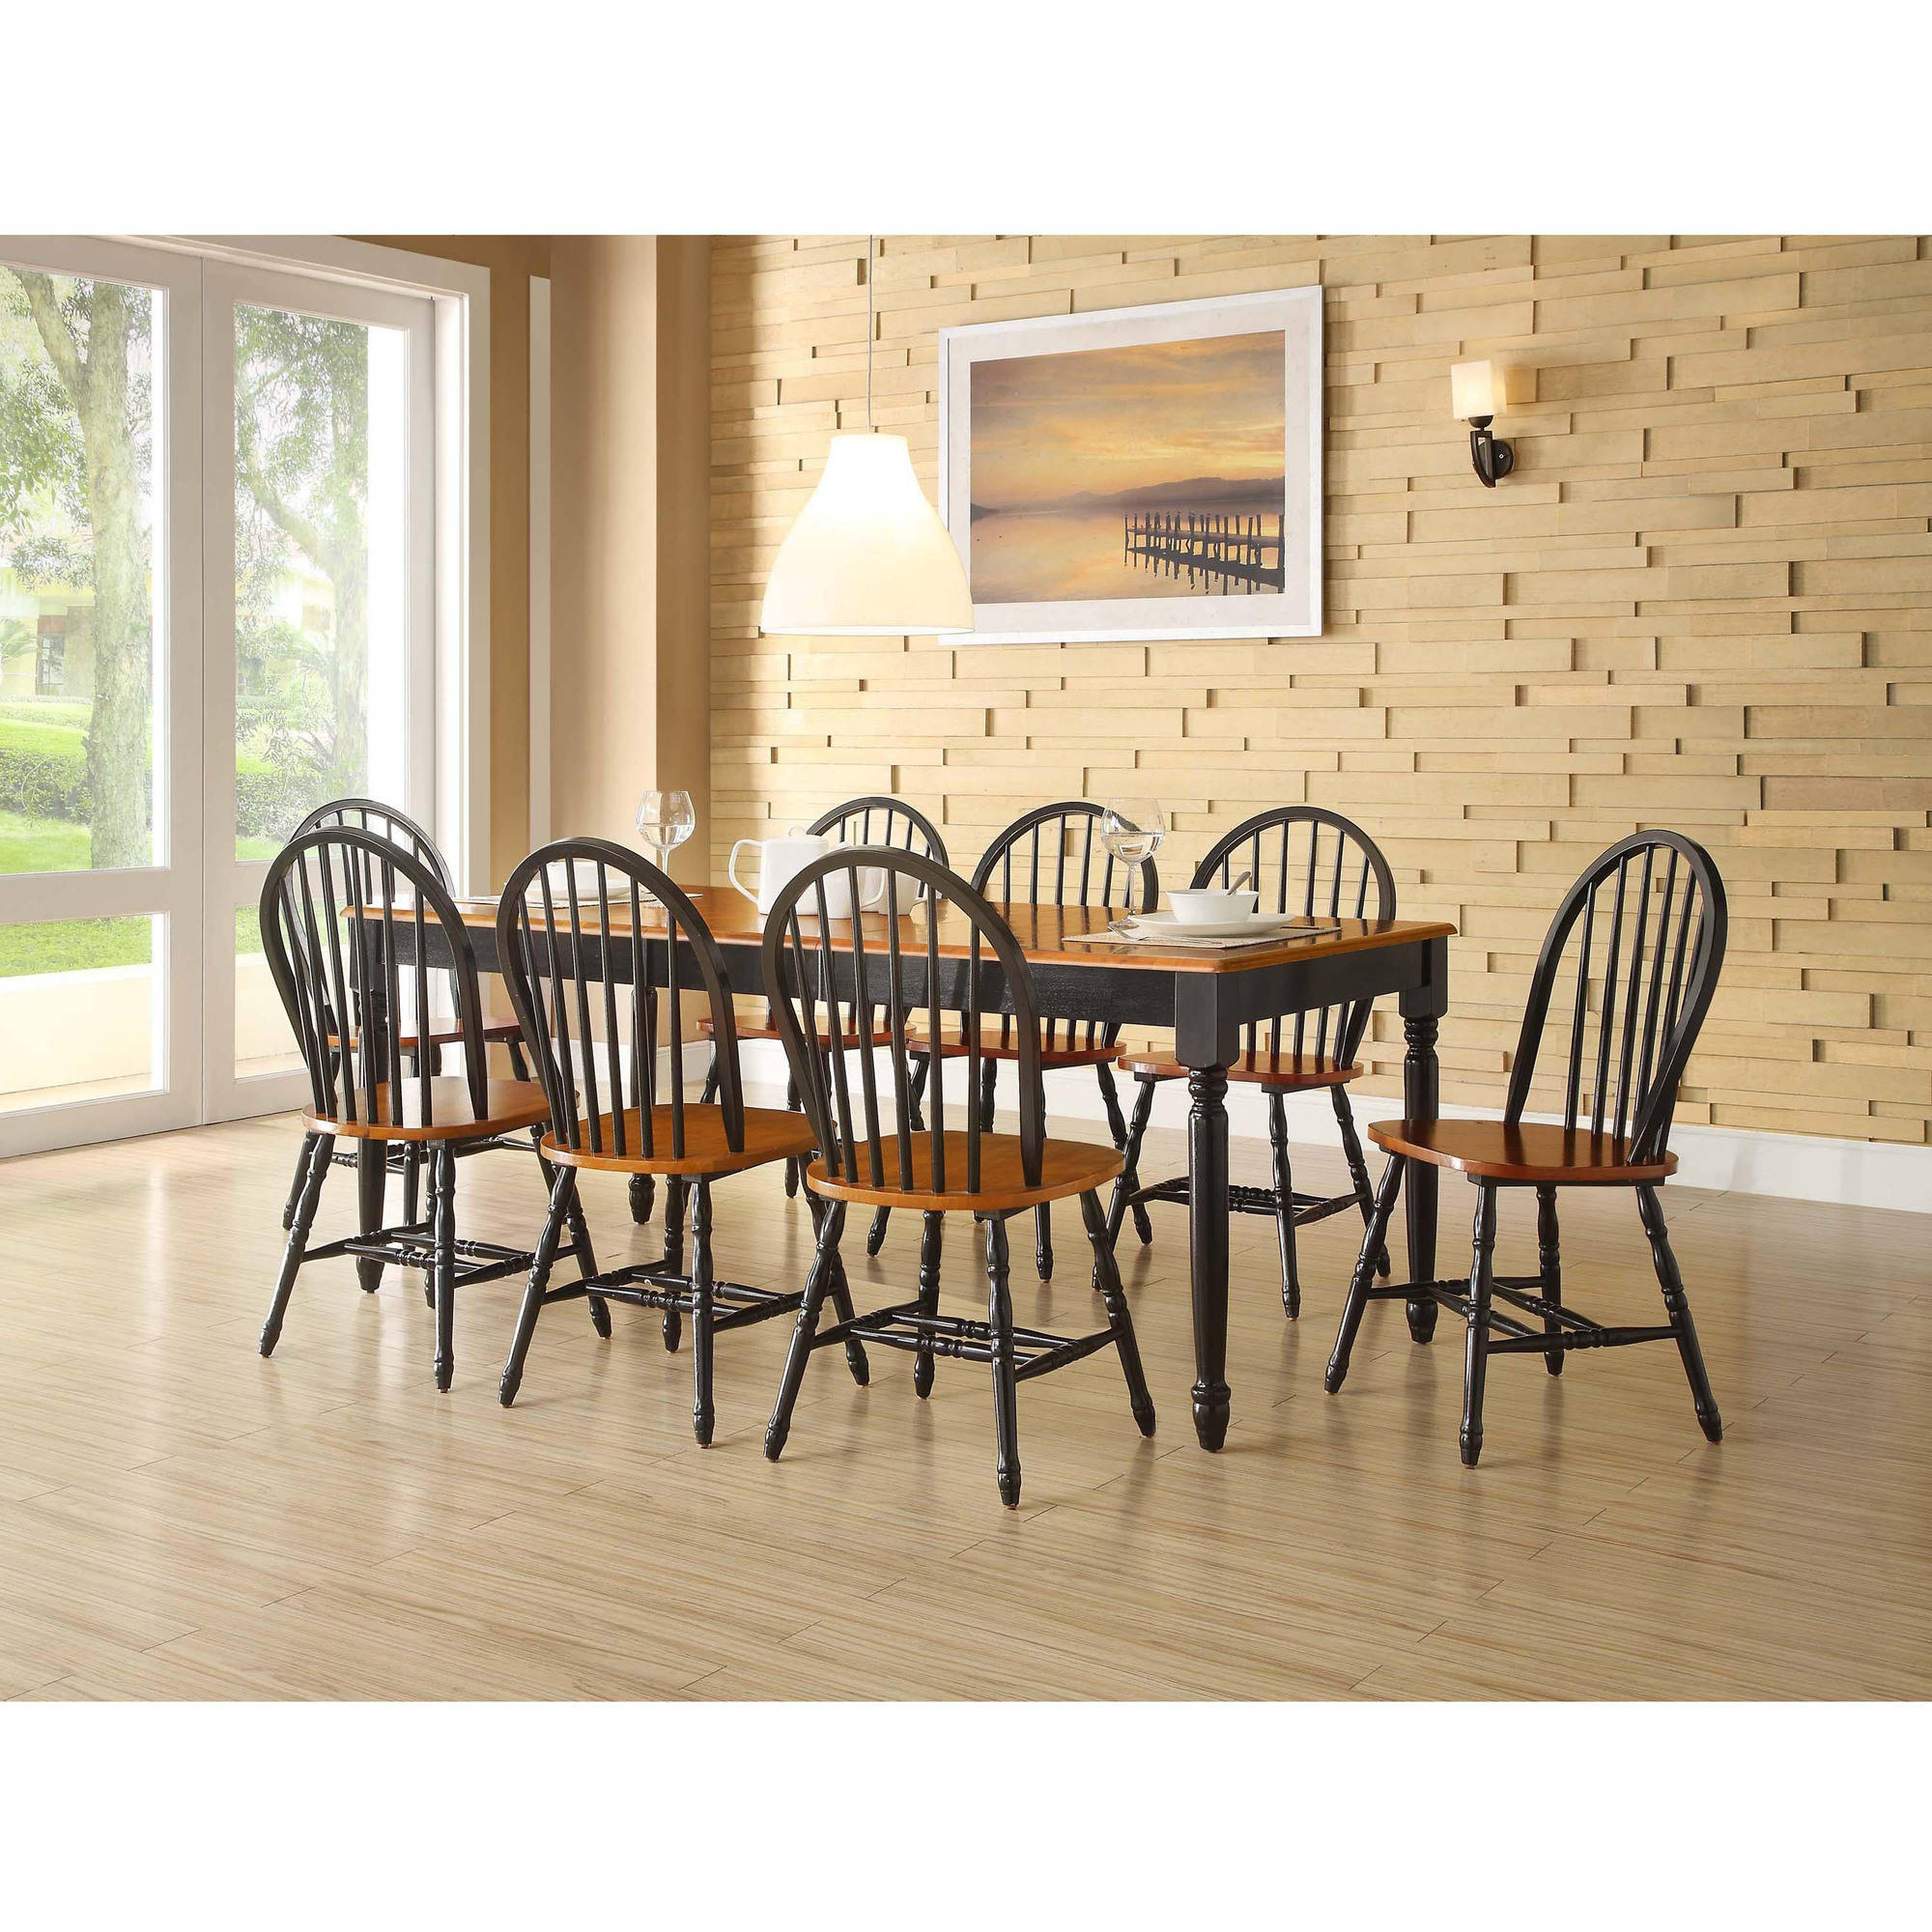 Better Homes And Gardens Autumn Lane 9 Piece Dining Set   Walmart.com